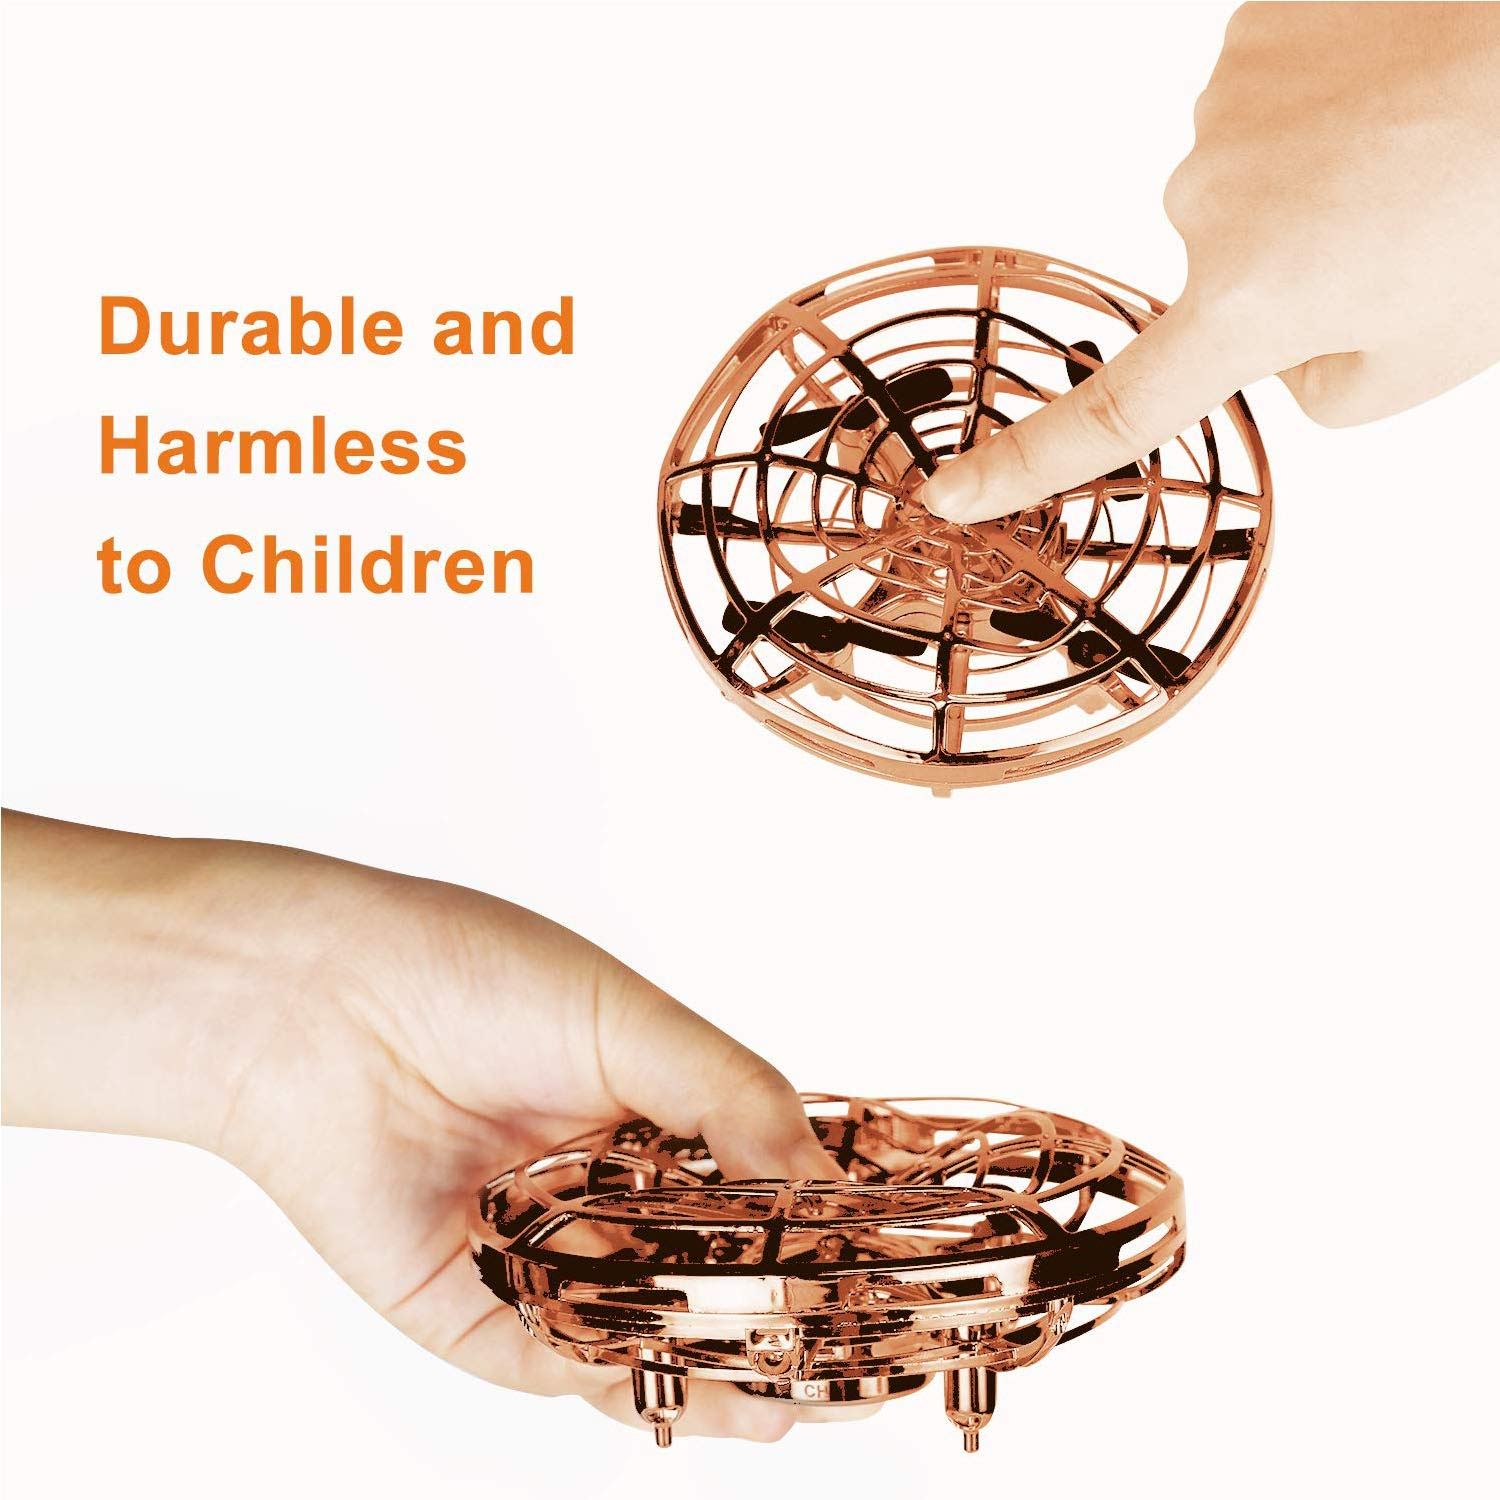 GhoSTar Toys Hand Controlled Flying Ball, Interactive Infrared Induction Helicopter Micro Drone with Shining LED Lights and 360°Rotation, Flying Toys and Beginner Drones for Kids Birthday Gifts (Gold) by GhoSTar Toys (Image #6)